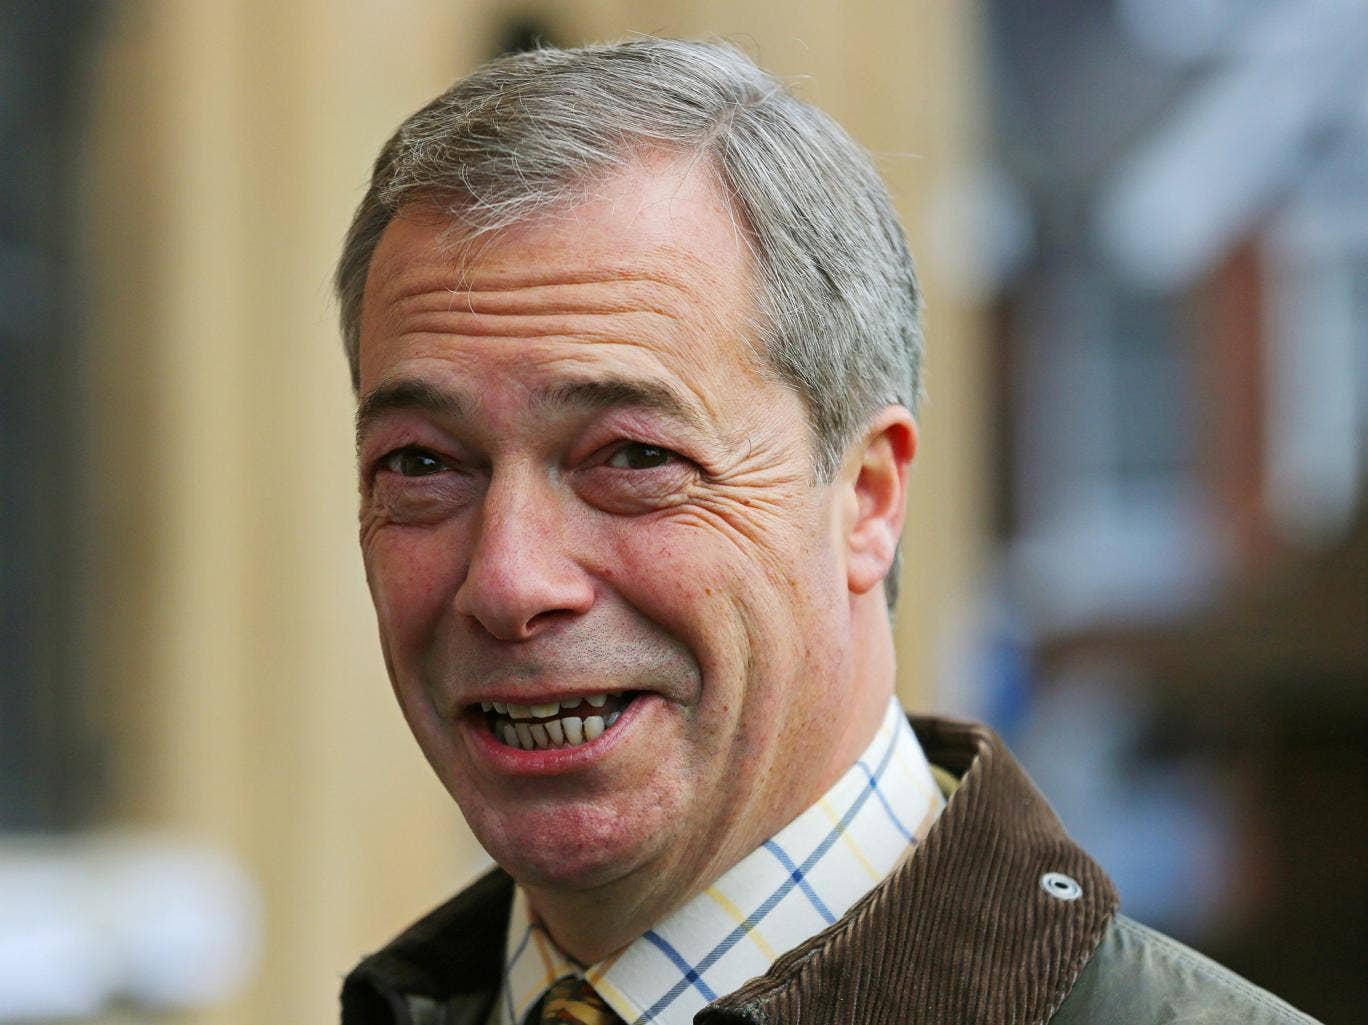 Nigel Farage launches attack on Jeremy Corbyn's dress ...